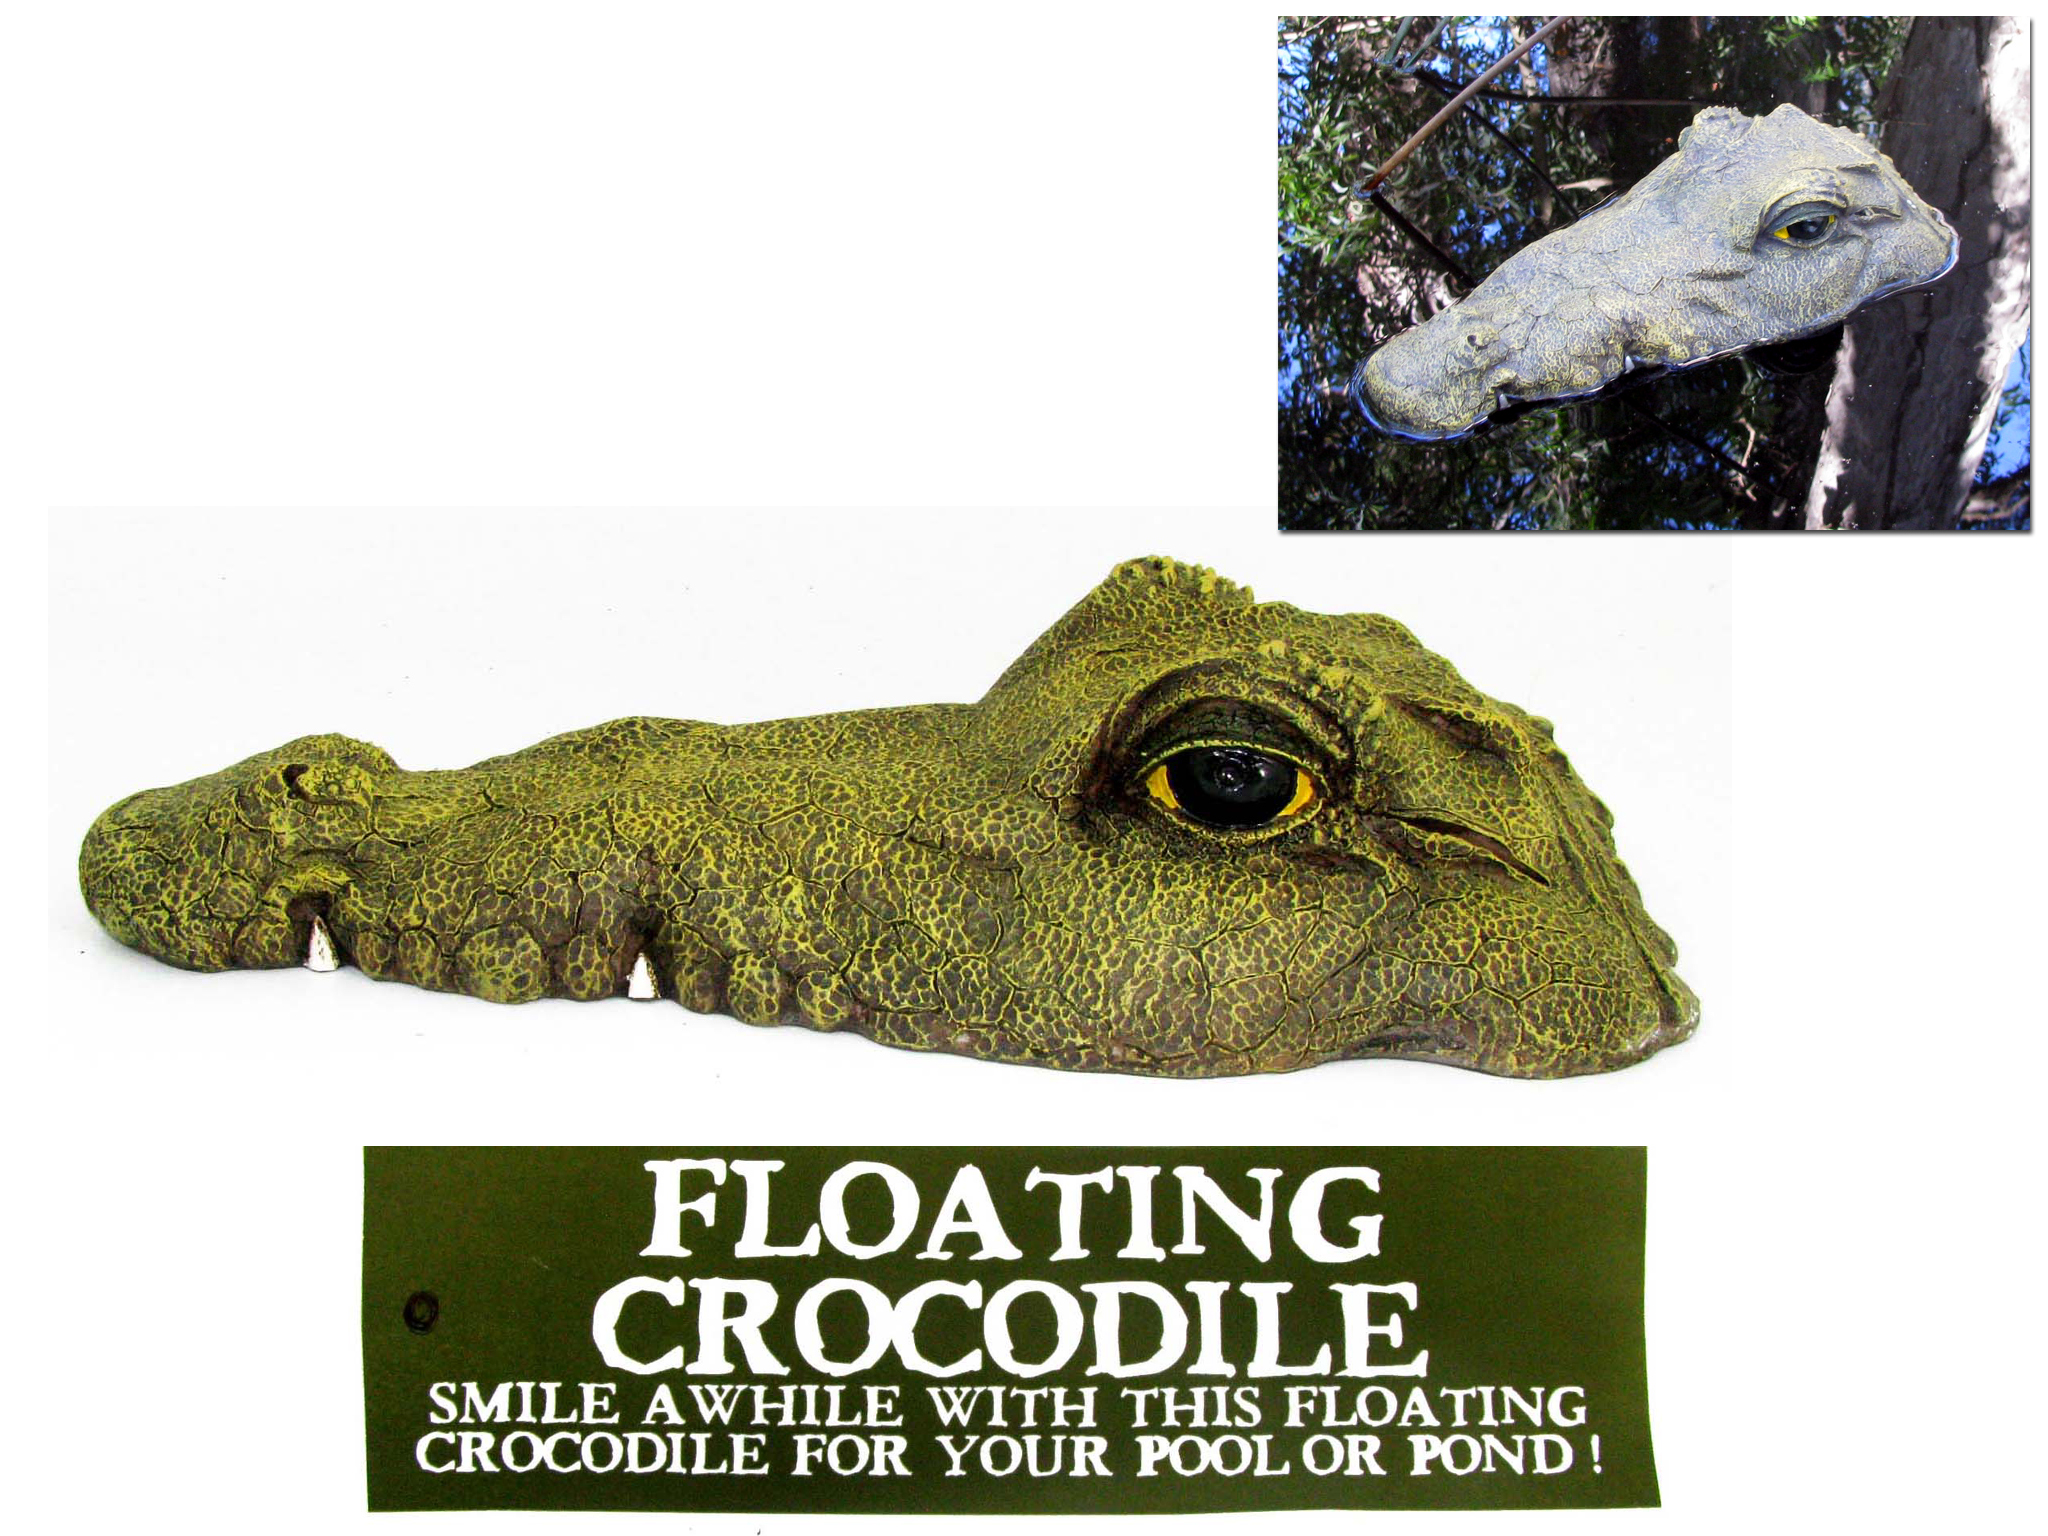 1pce Floating Crocodile Head Realistic Great For Keeping Ducks And Birds Away Ebay